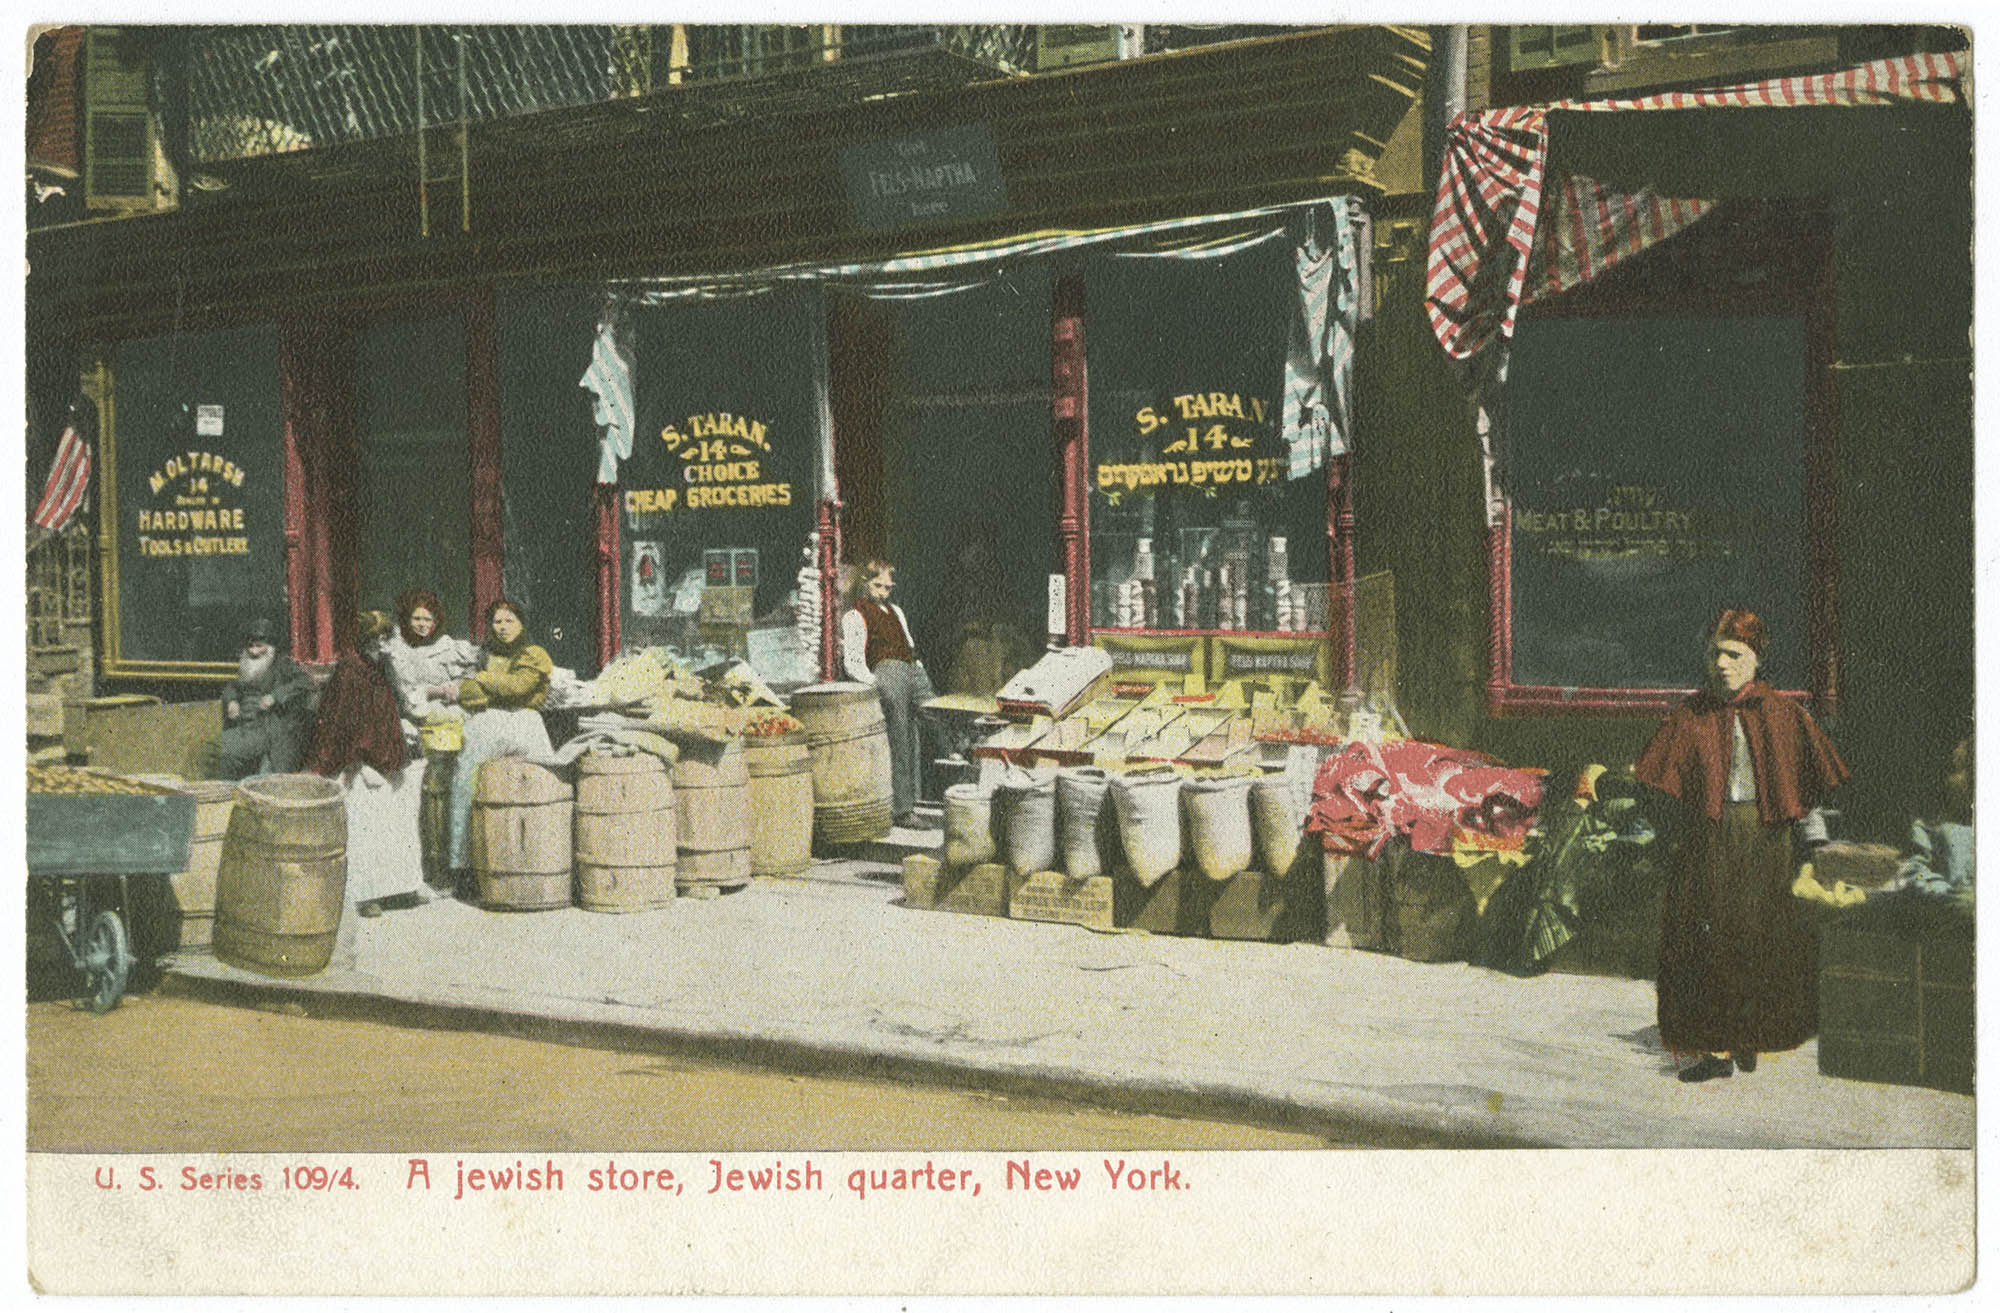 A Jewish store, Jewish quarter, New York